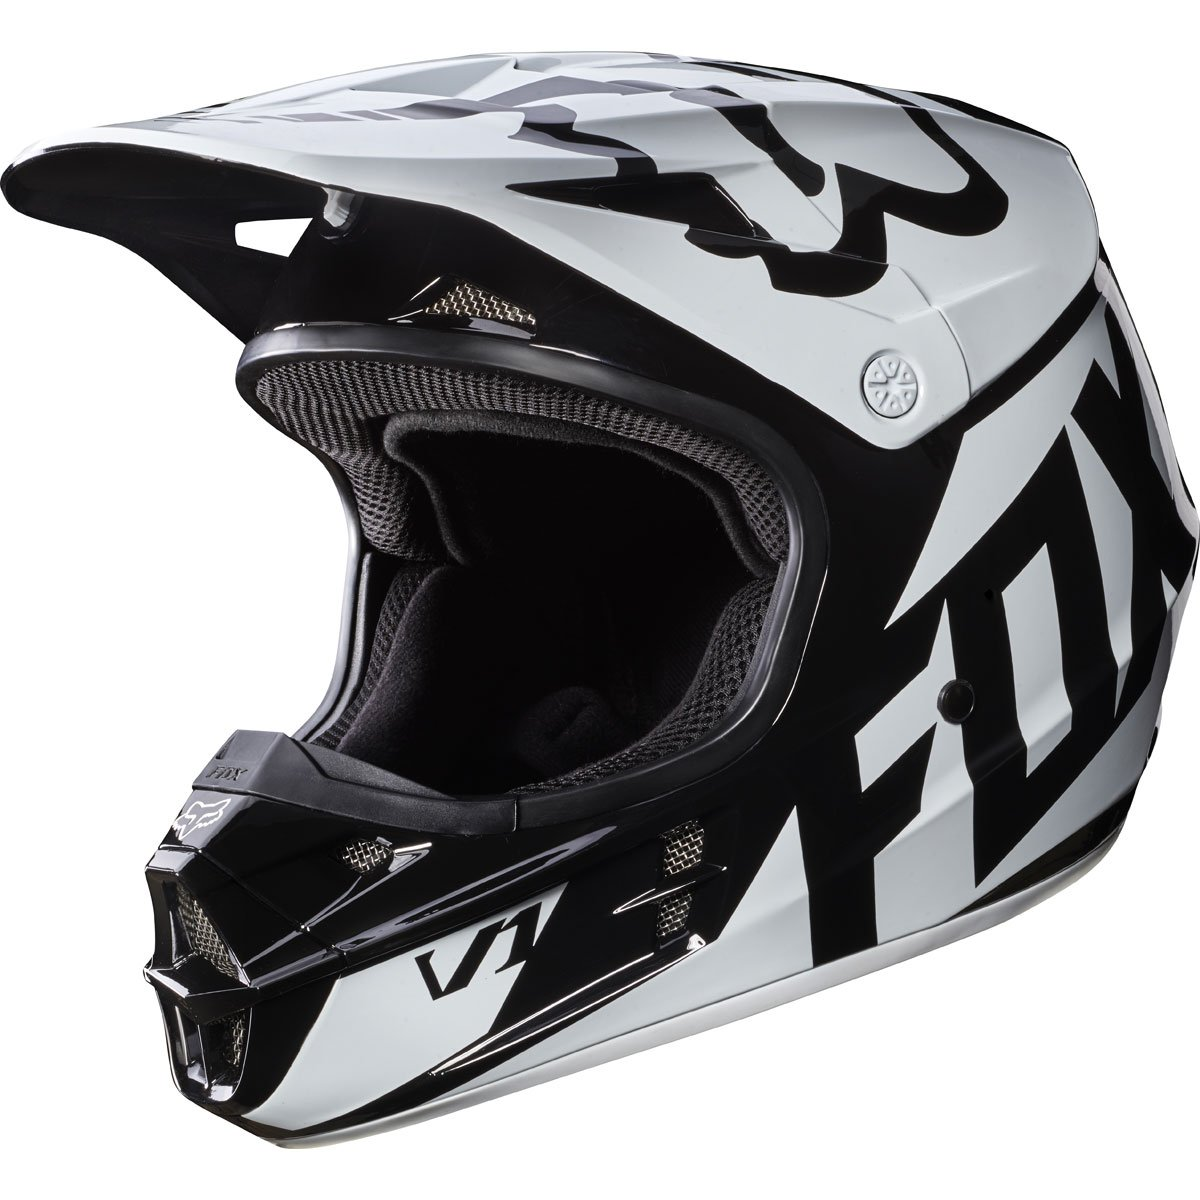 2017 Fox Racing V1 Race Helmet-Black-L by Fox Racing